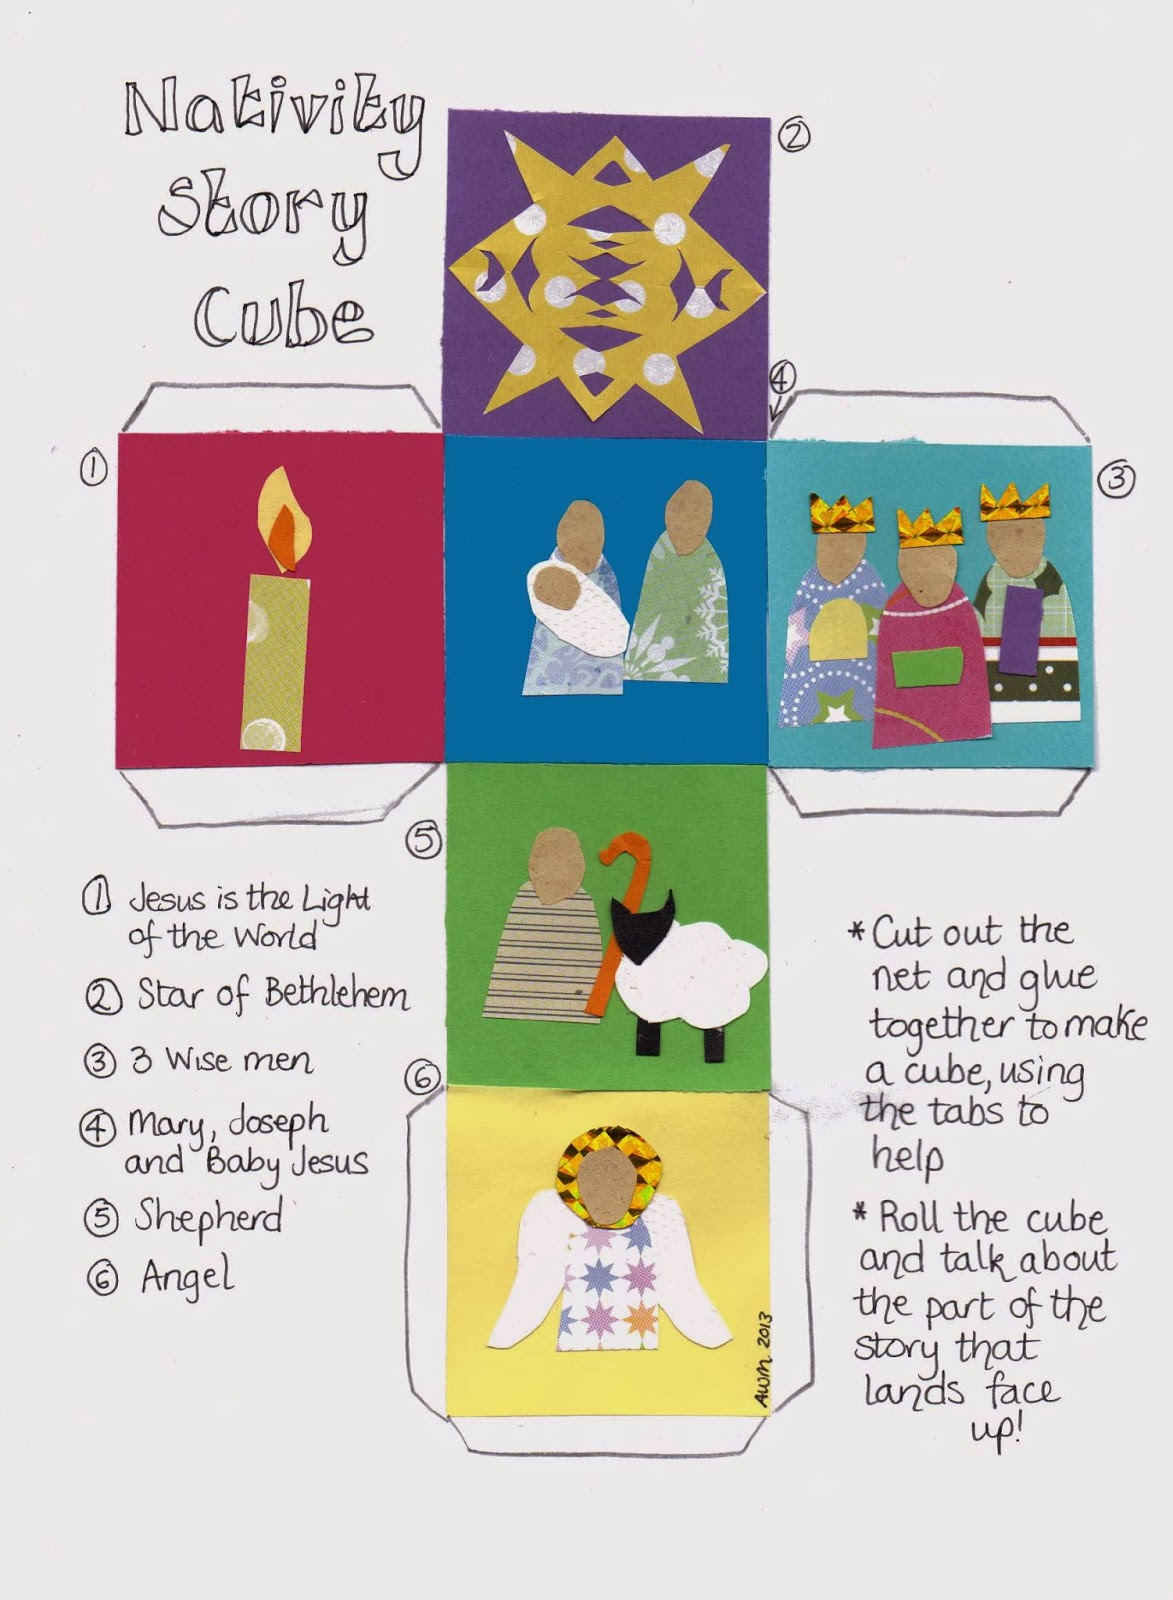 Flame Creative Children S Ministry Nativity Story Cube